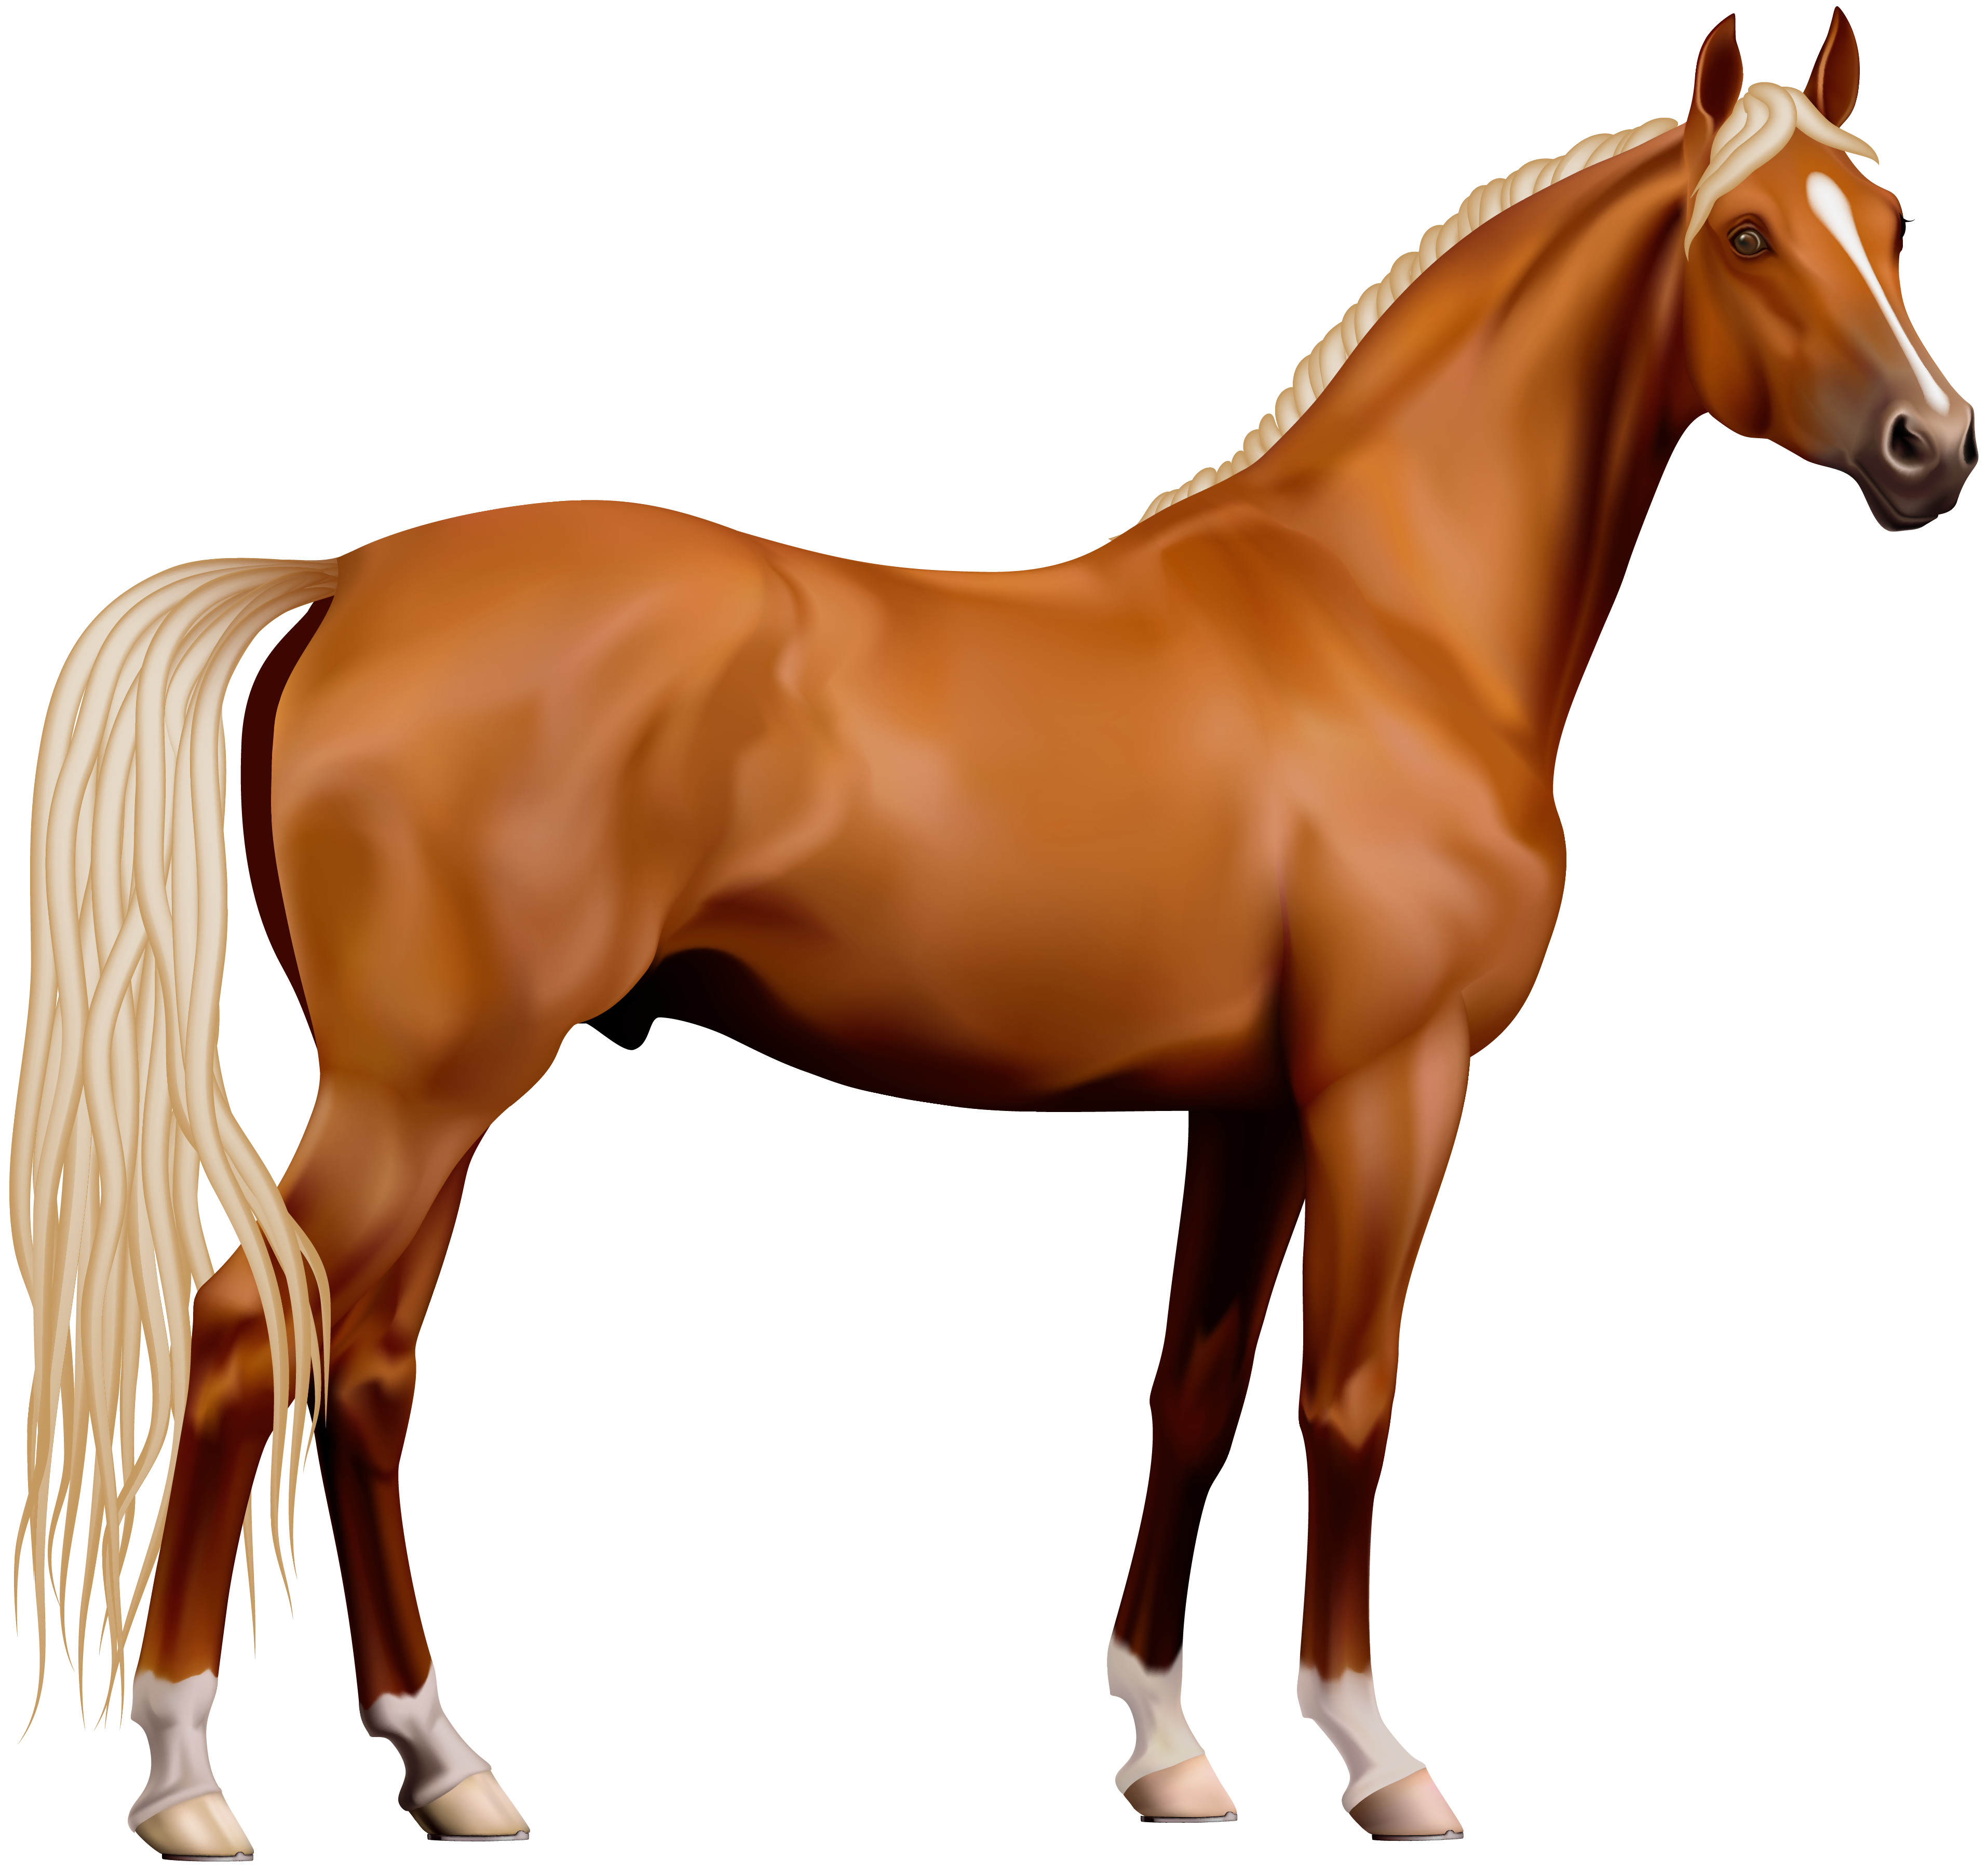 Transparent png gallery yopriceville. Animals clipart horse